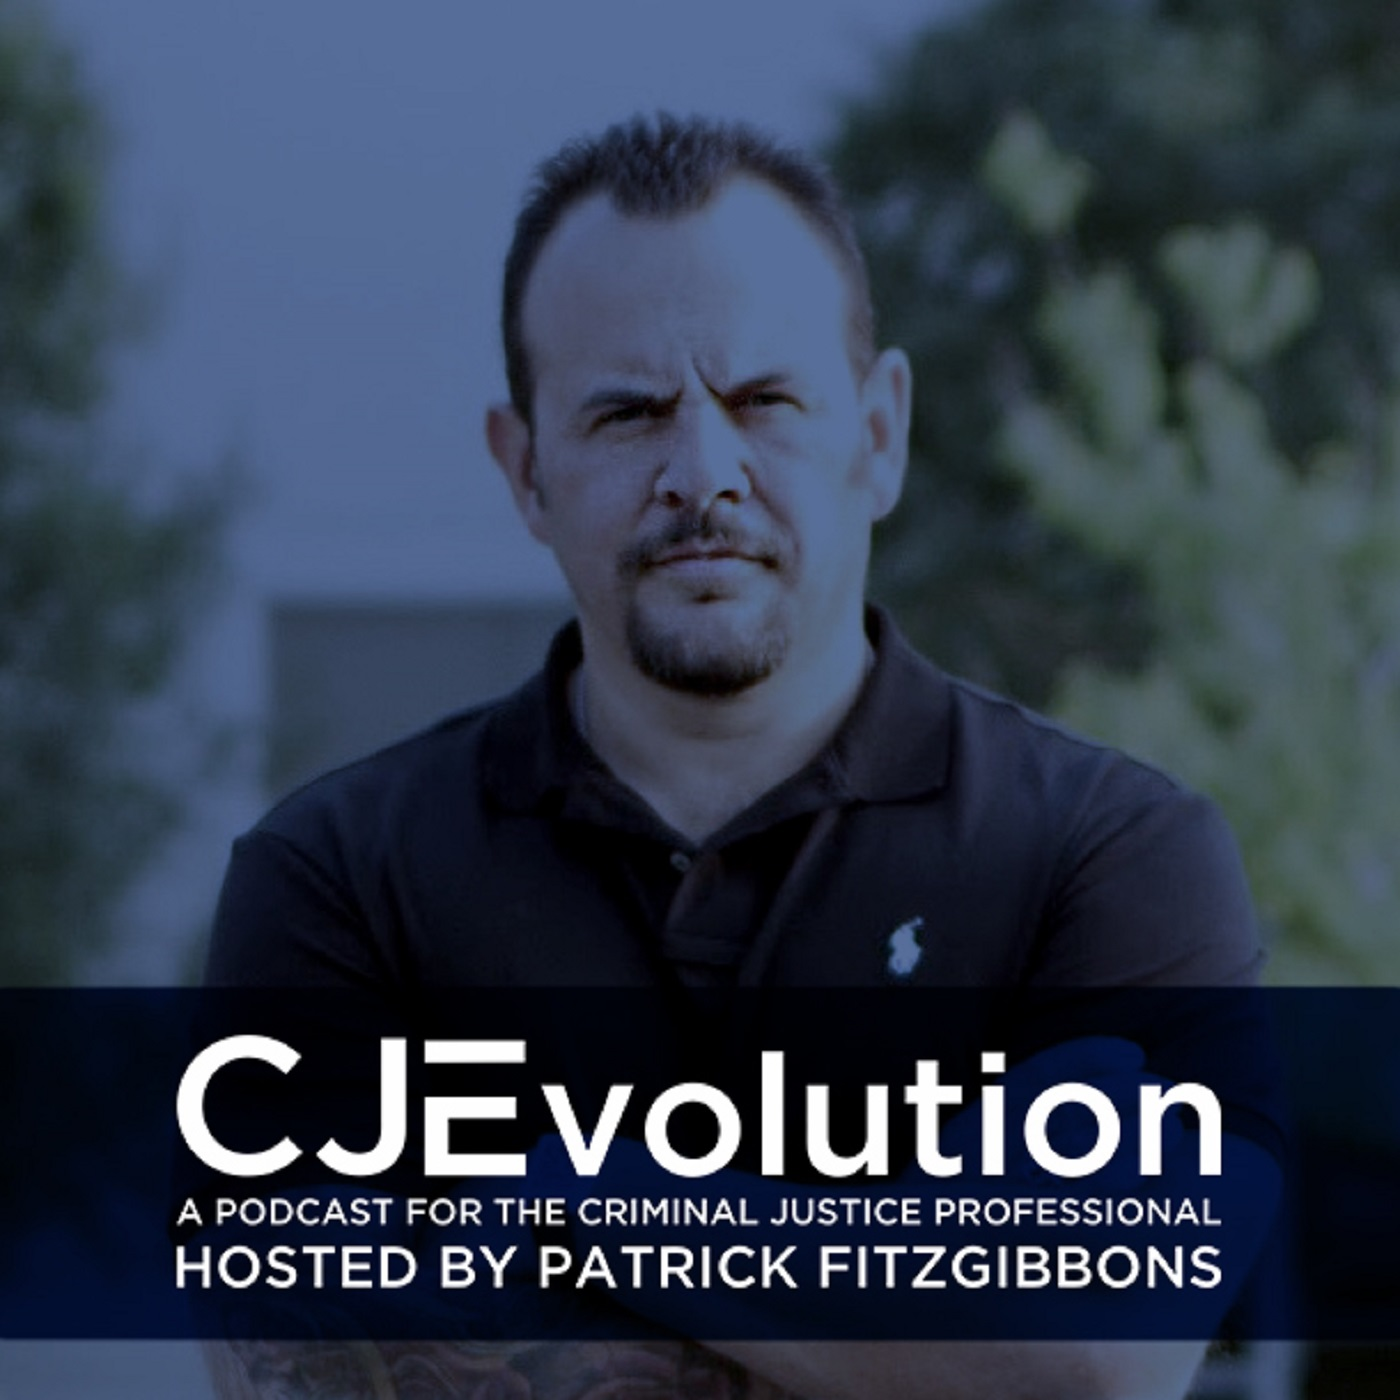 Criminal Justice Evolution (CJEvolution) - Hosted by Patrick Fitzgibbons